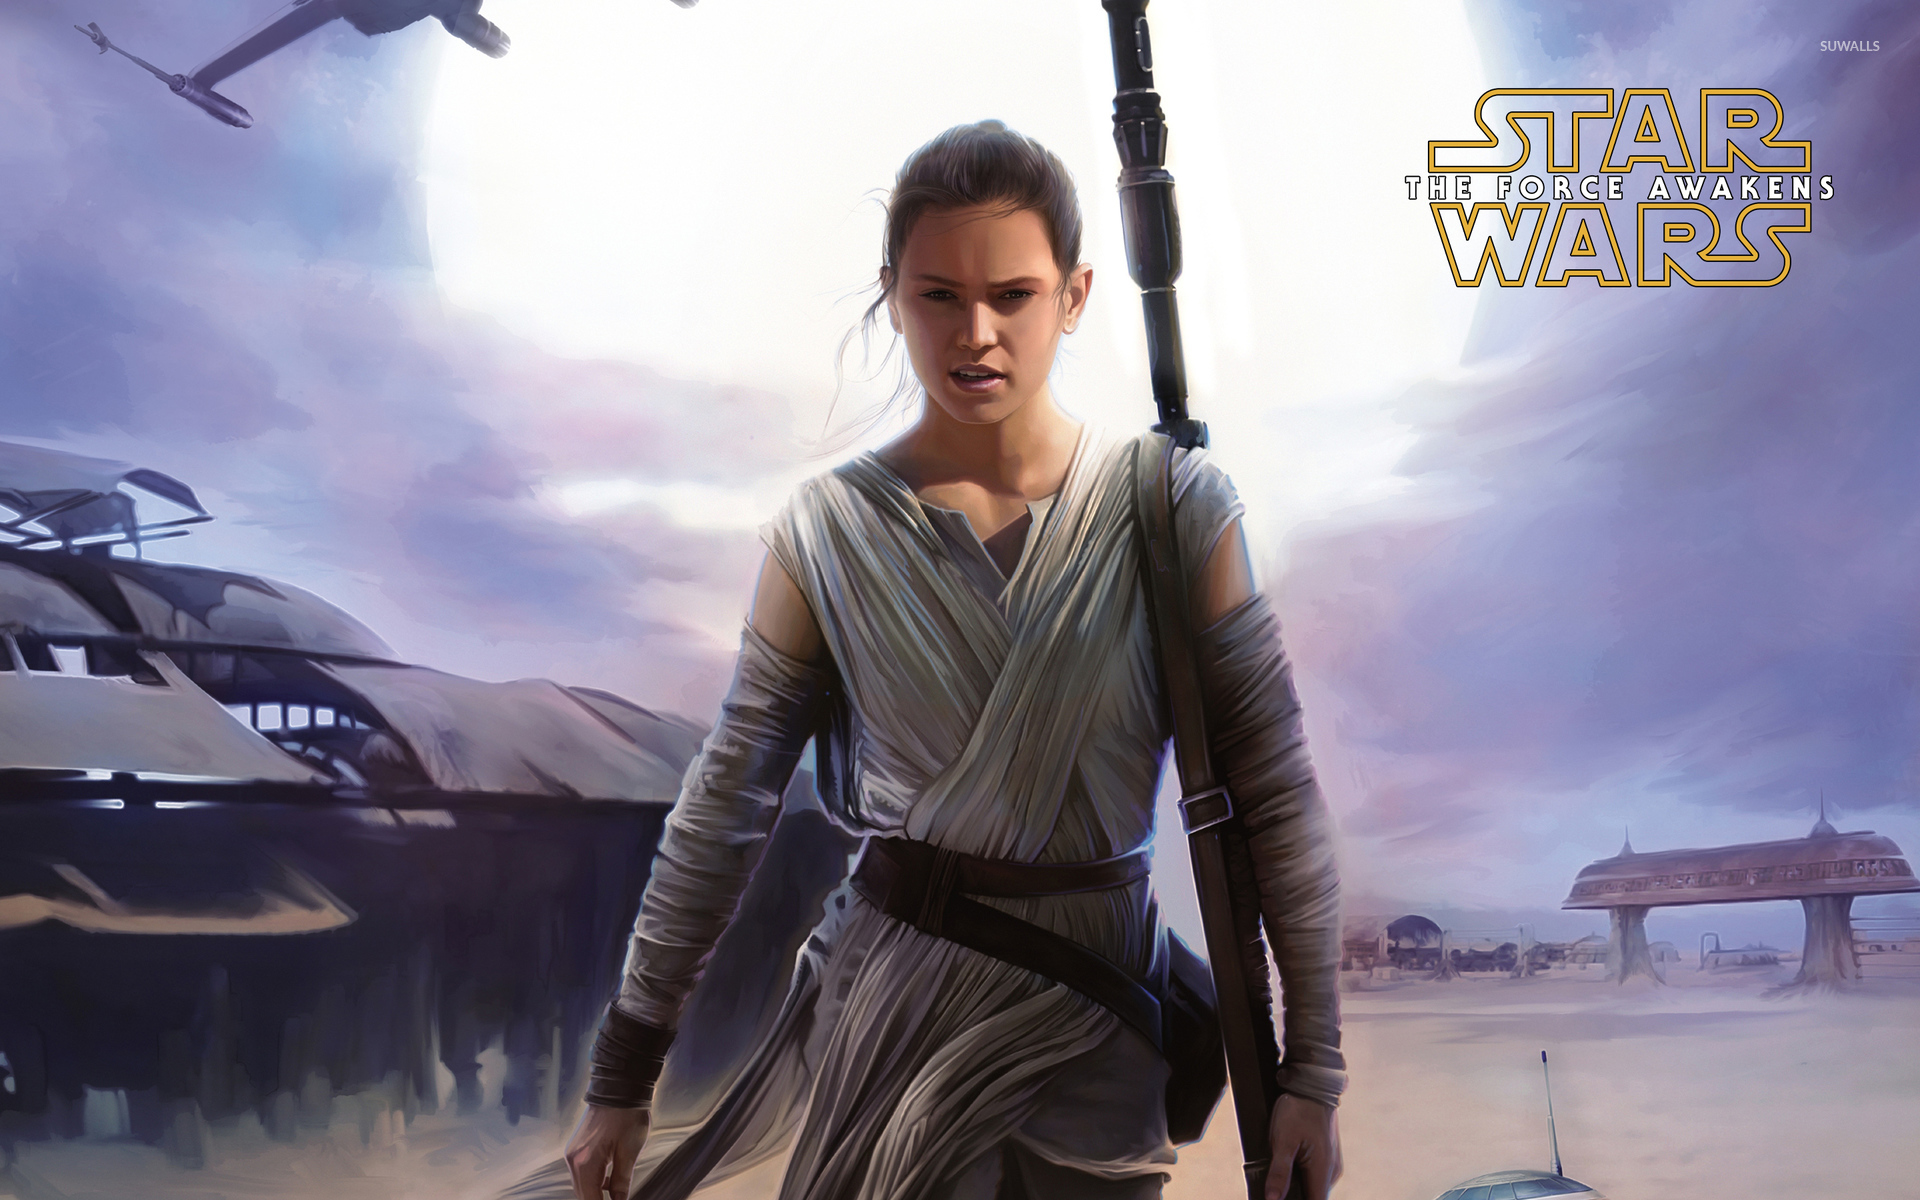 Rey in Star Wars The Force Awakens wallpaper   Movie wallpapers 1920x1200